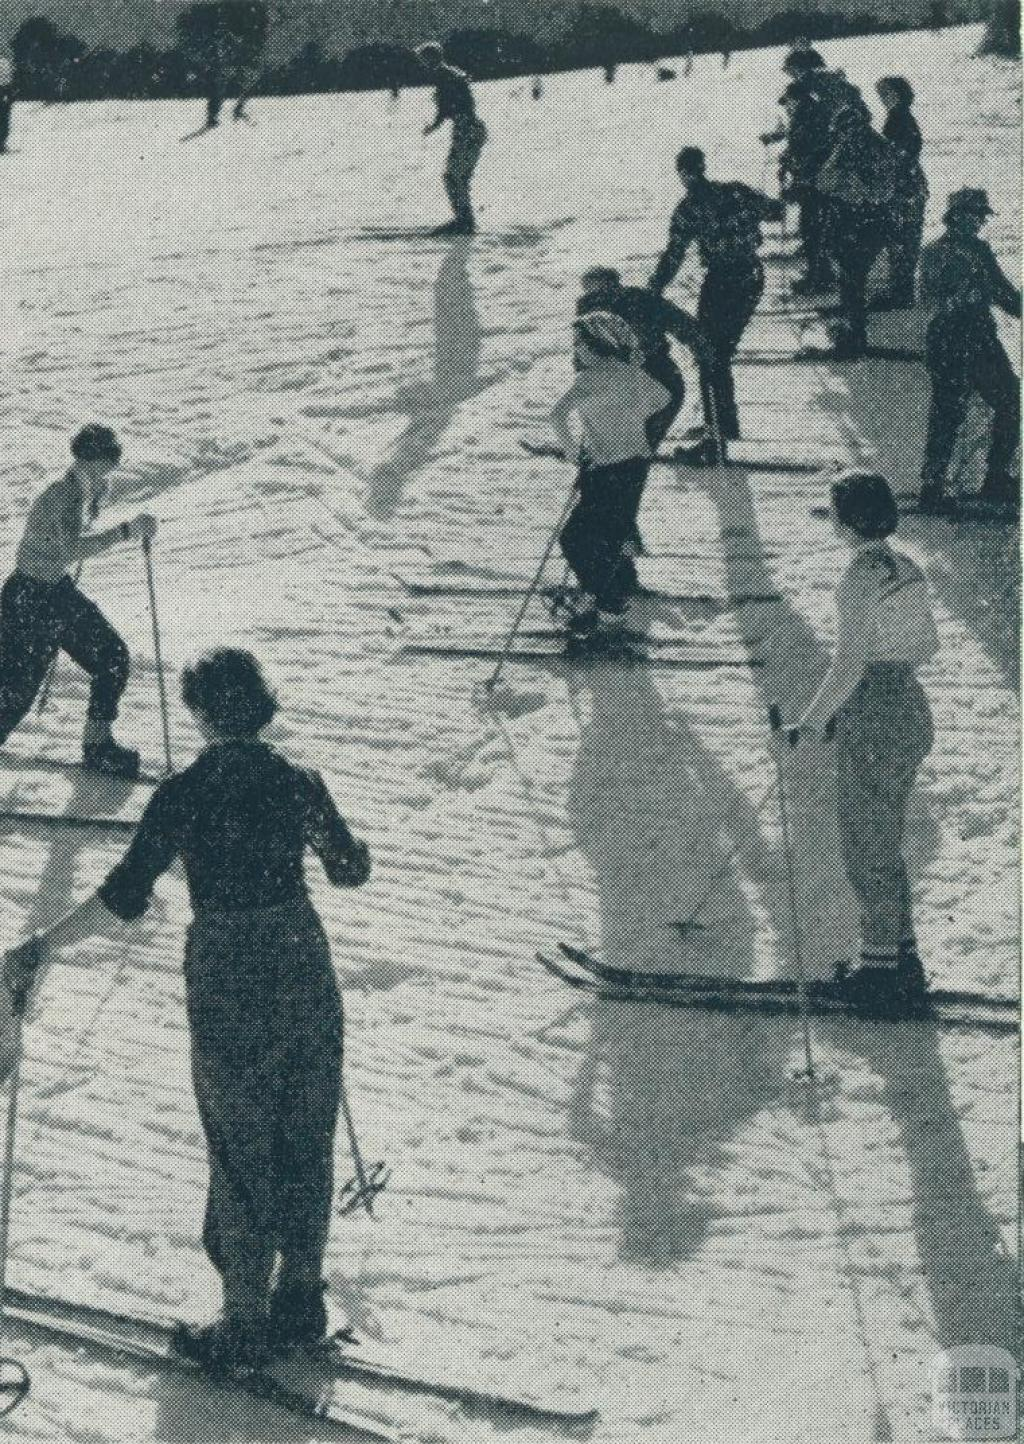 Skiing, Mount Buffalo National Park, 1951